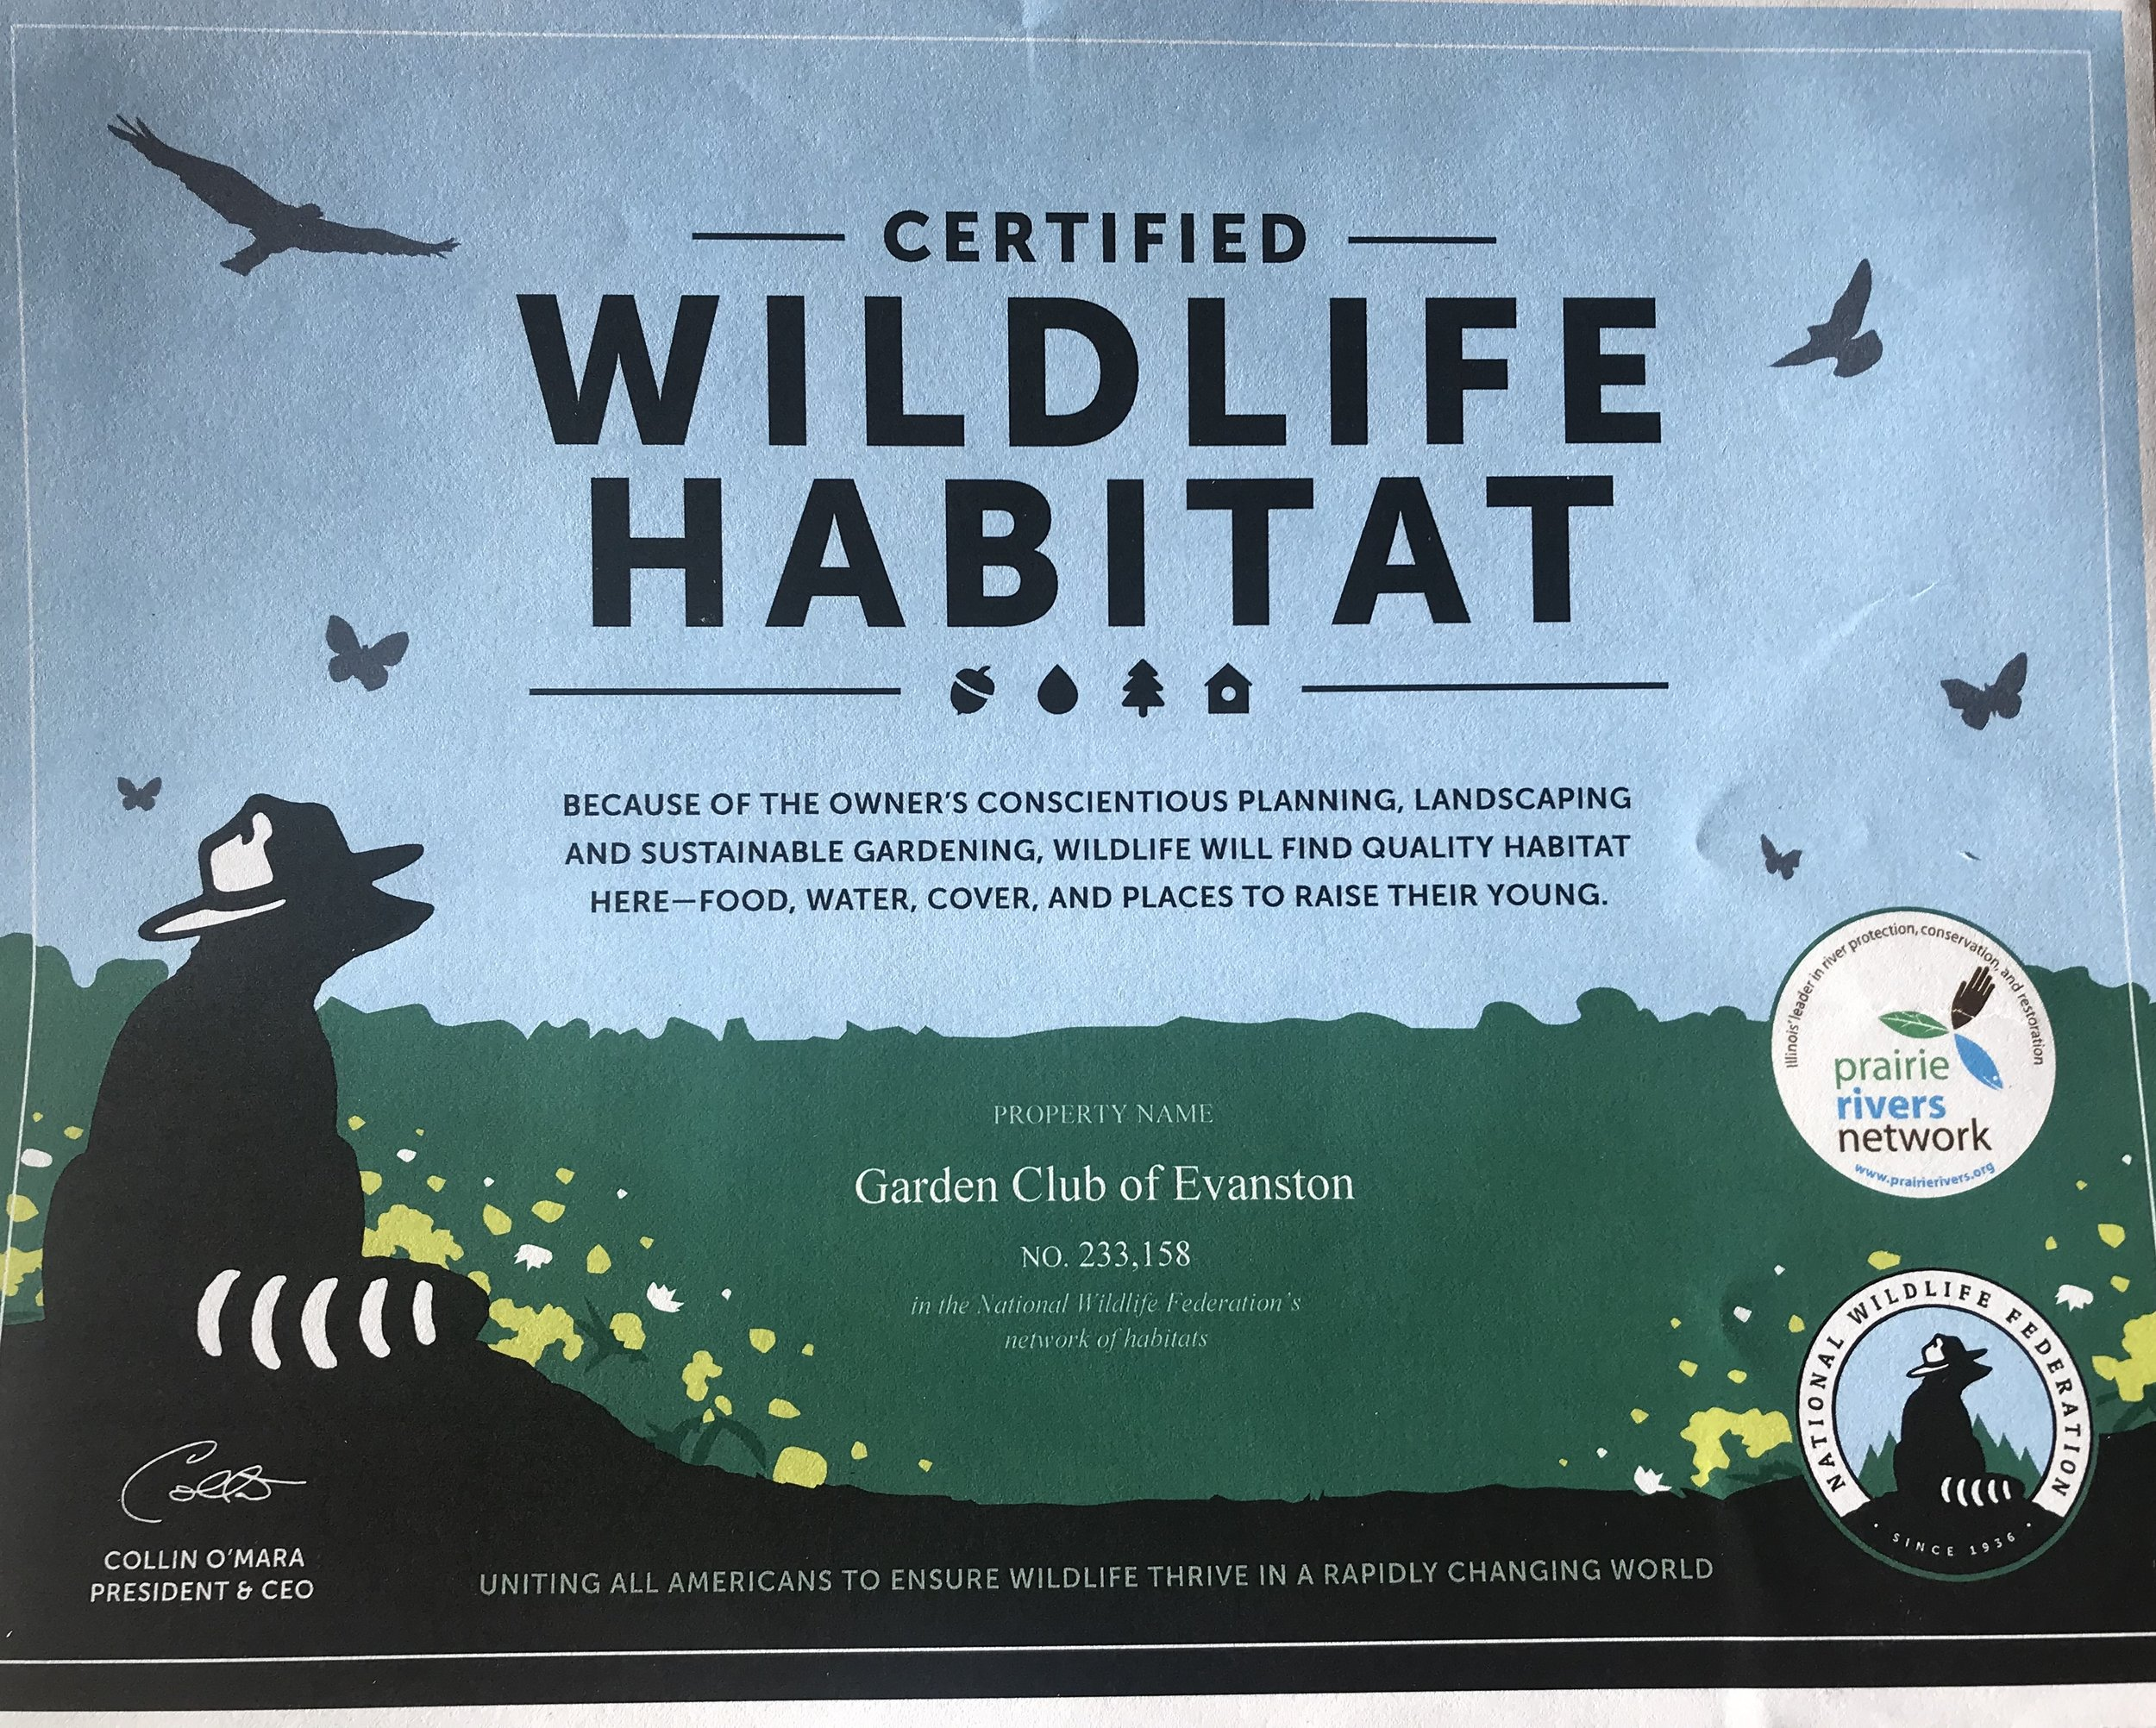 Certified Wildlife Habitat.jpeg